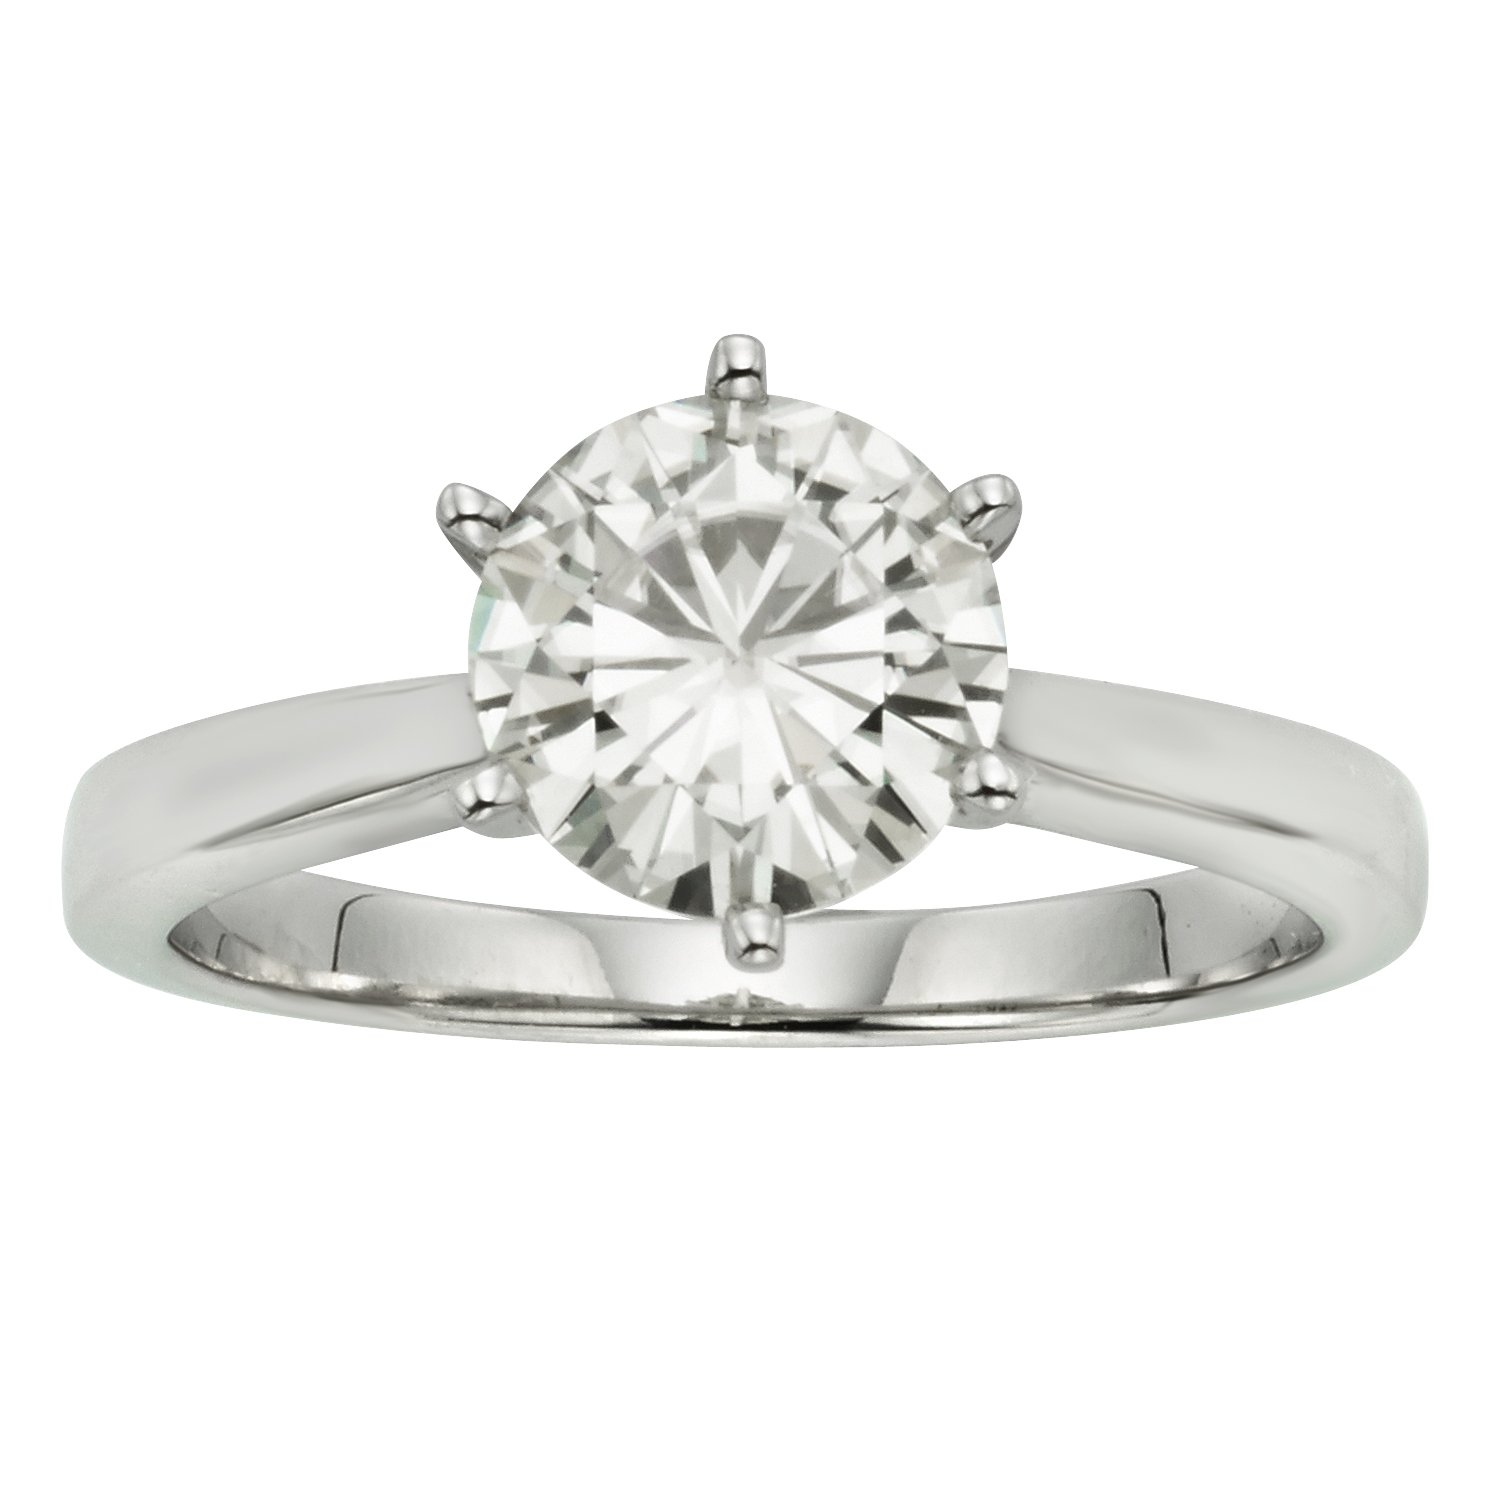 Forever Classic Round 6.0mm Moissanite Engagement Ring-size 9, 0.80ct DEW By Charles & Colvard